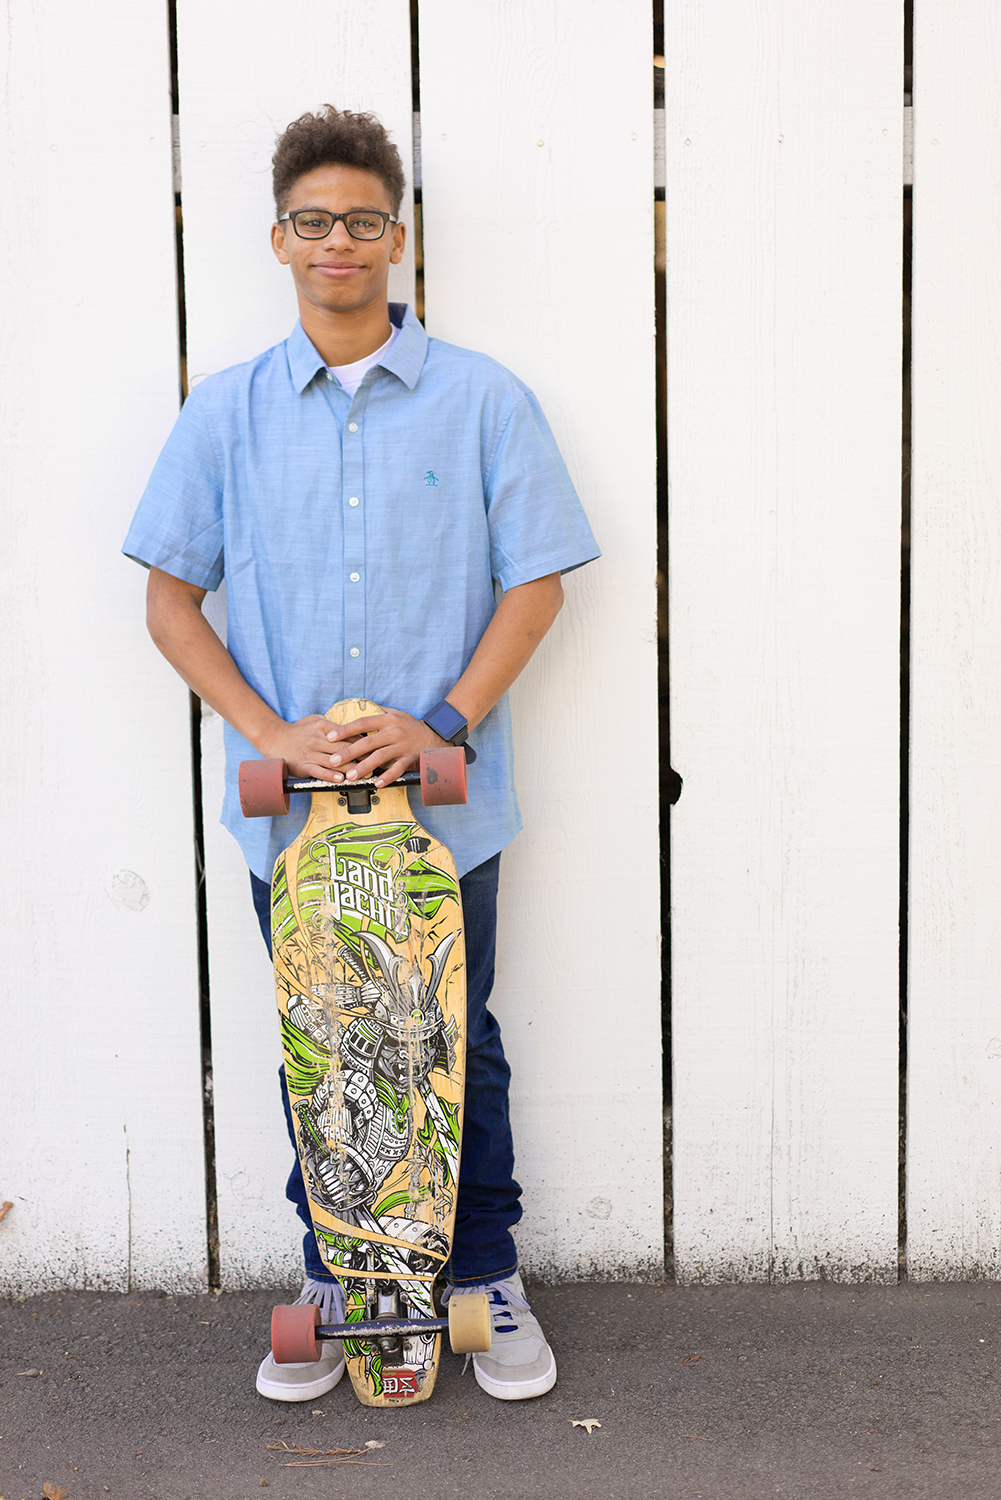 teen boy with skateboard-SRVHS photography